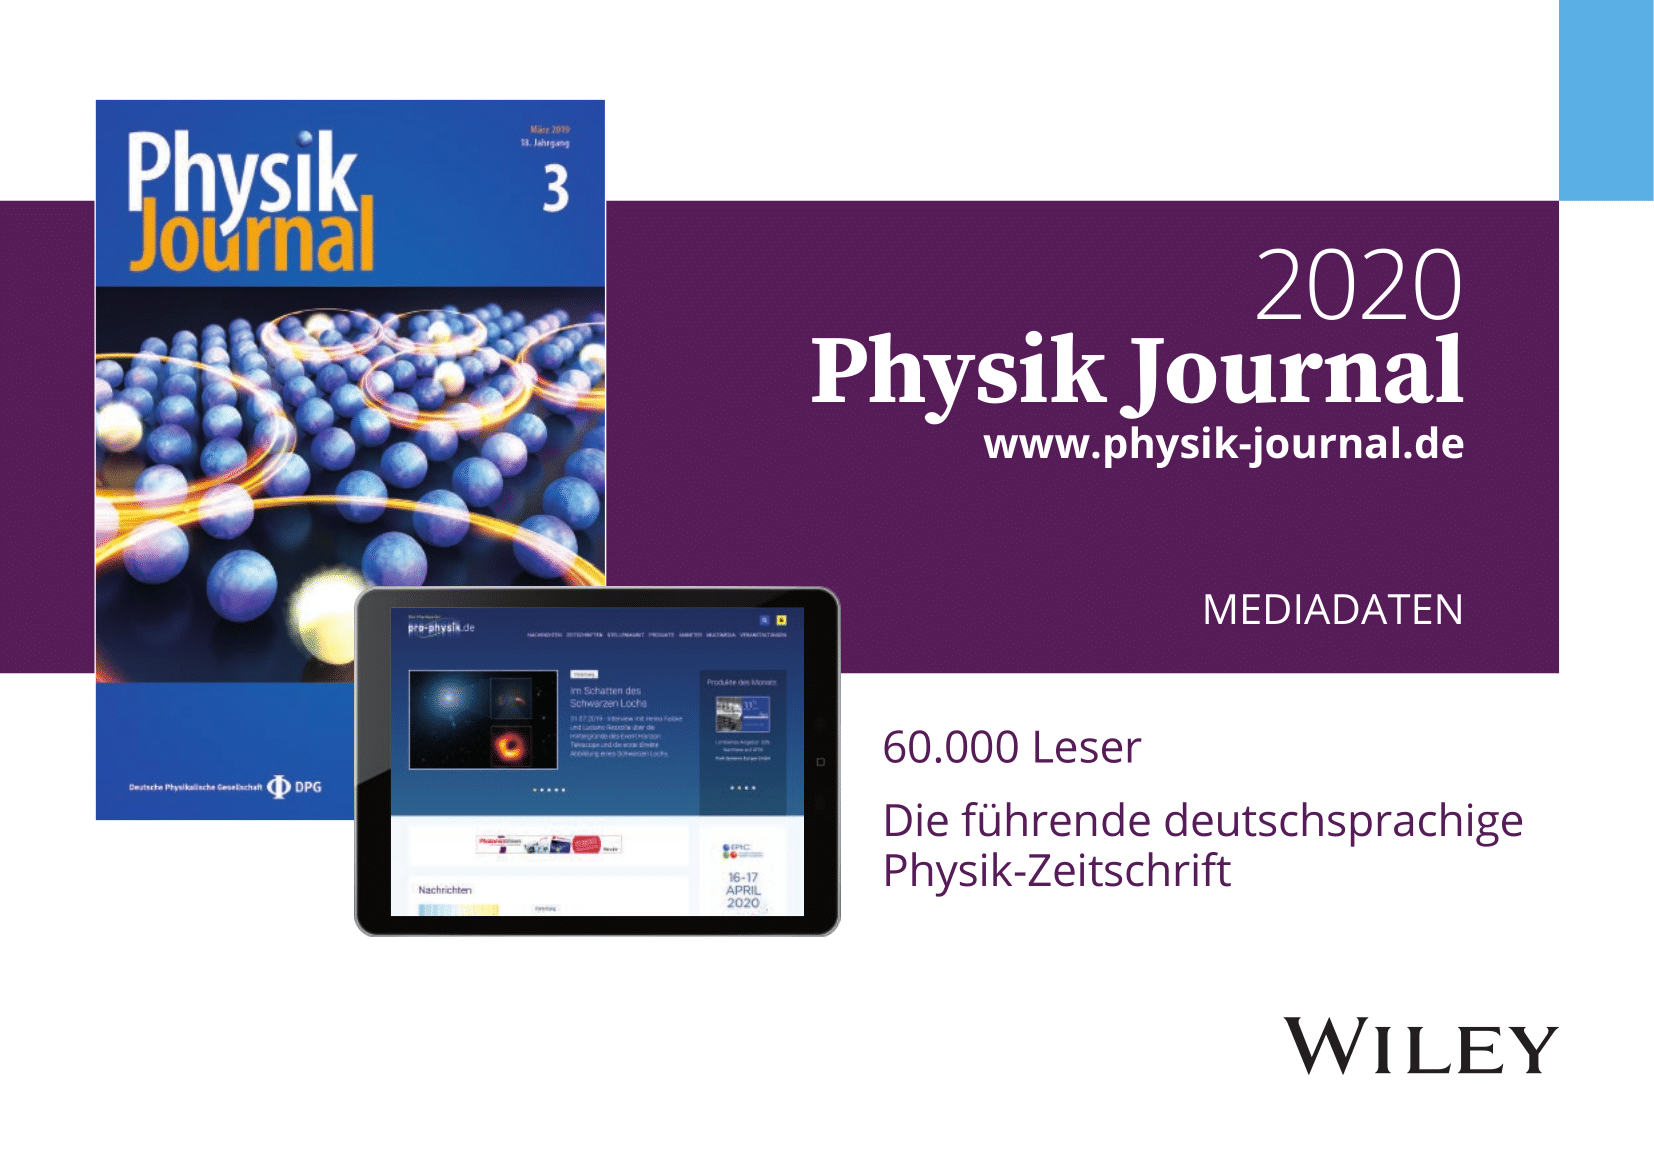 Physik Journal